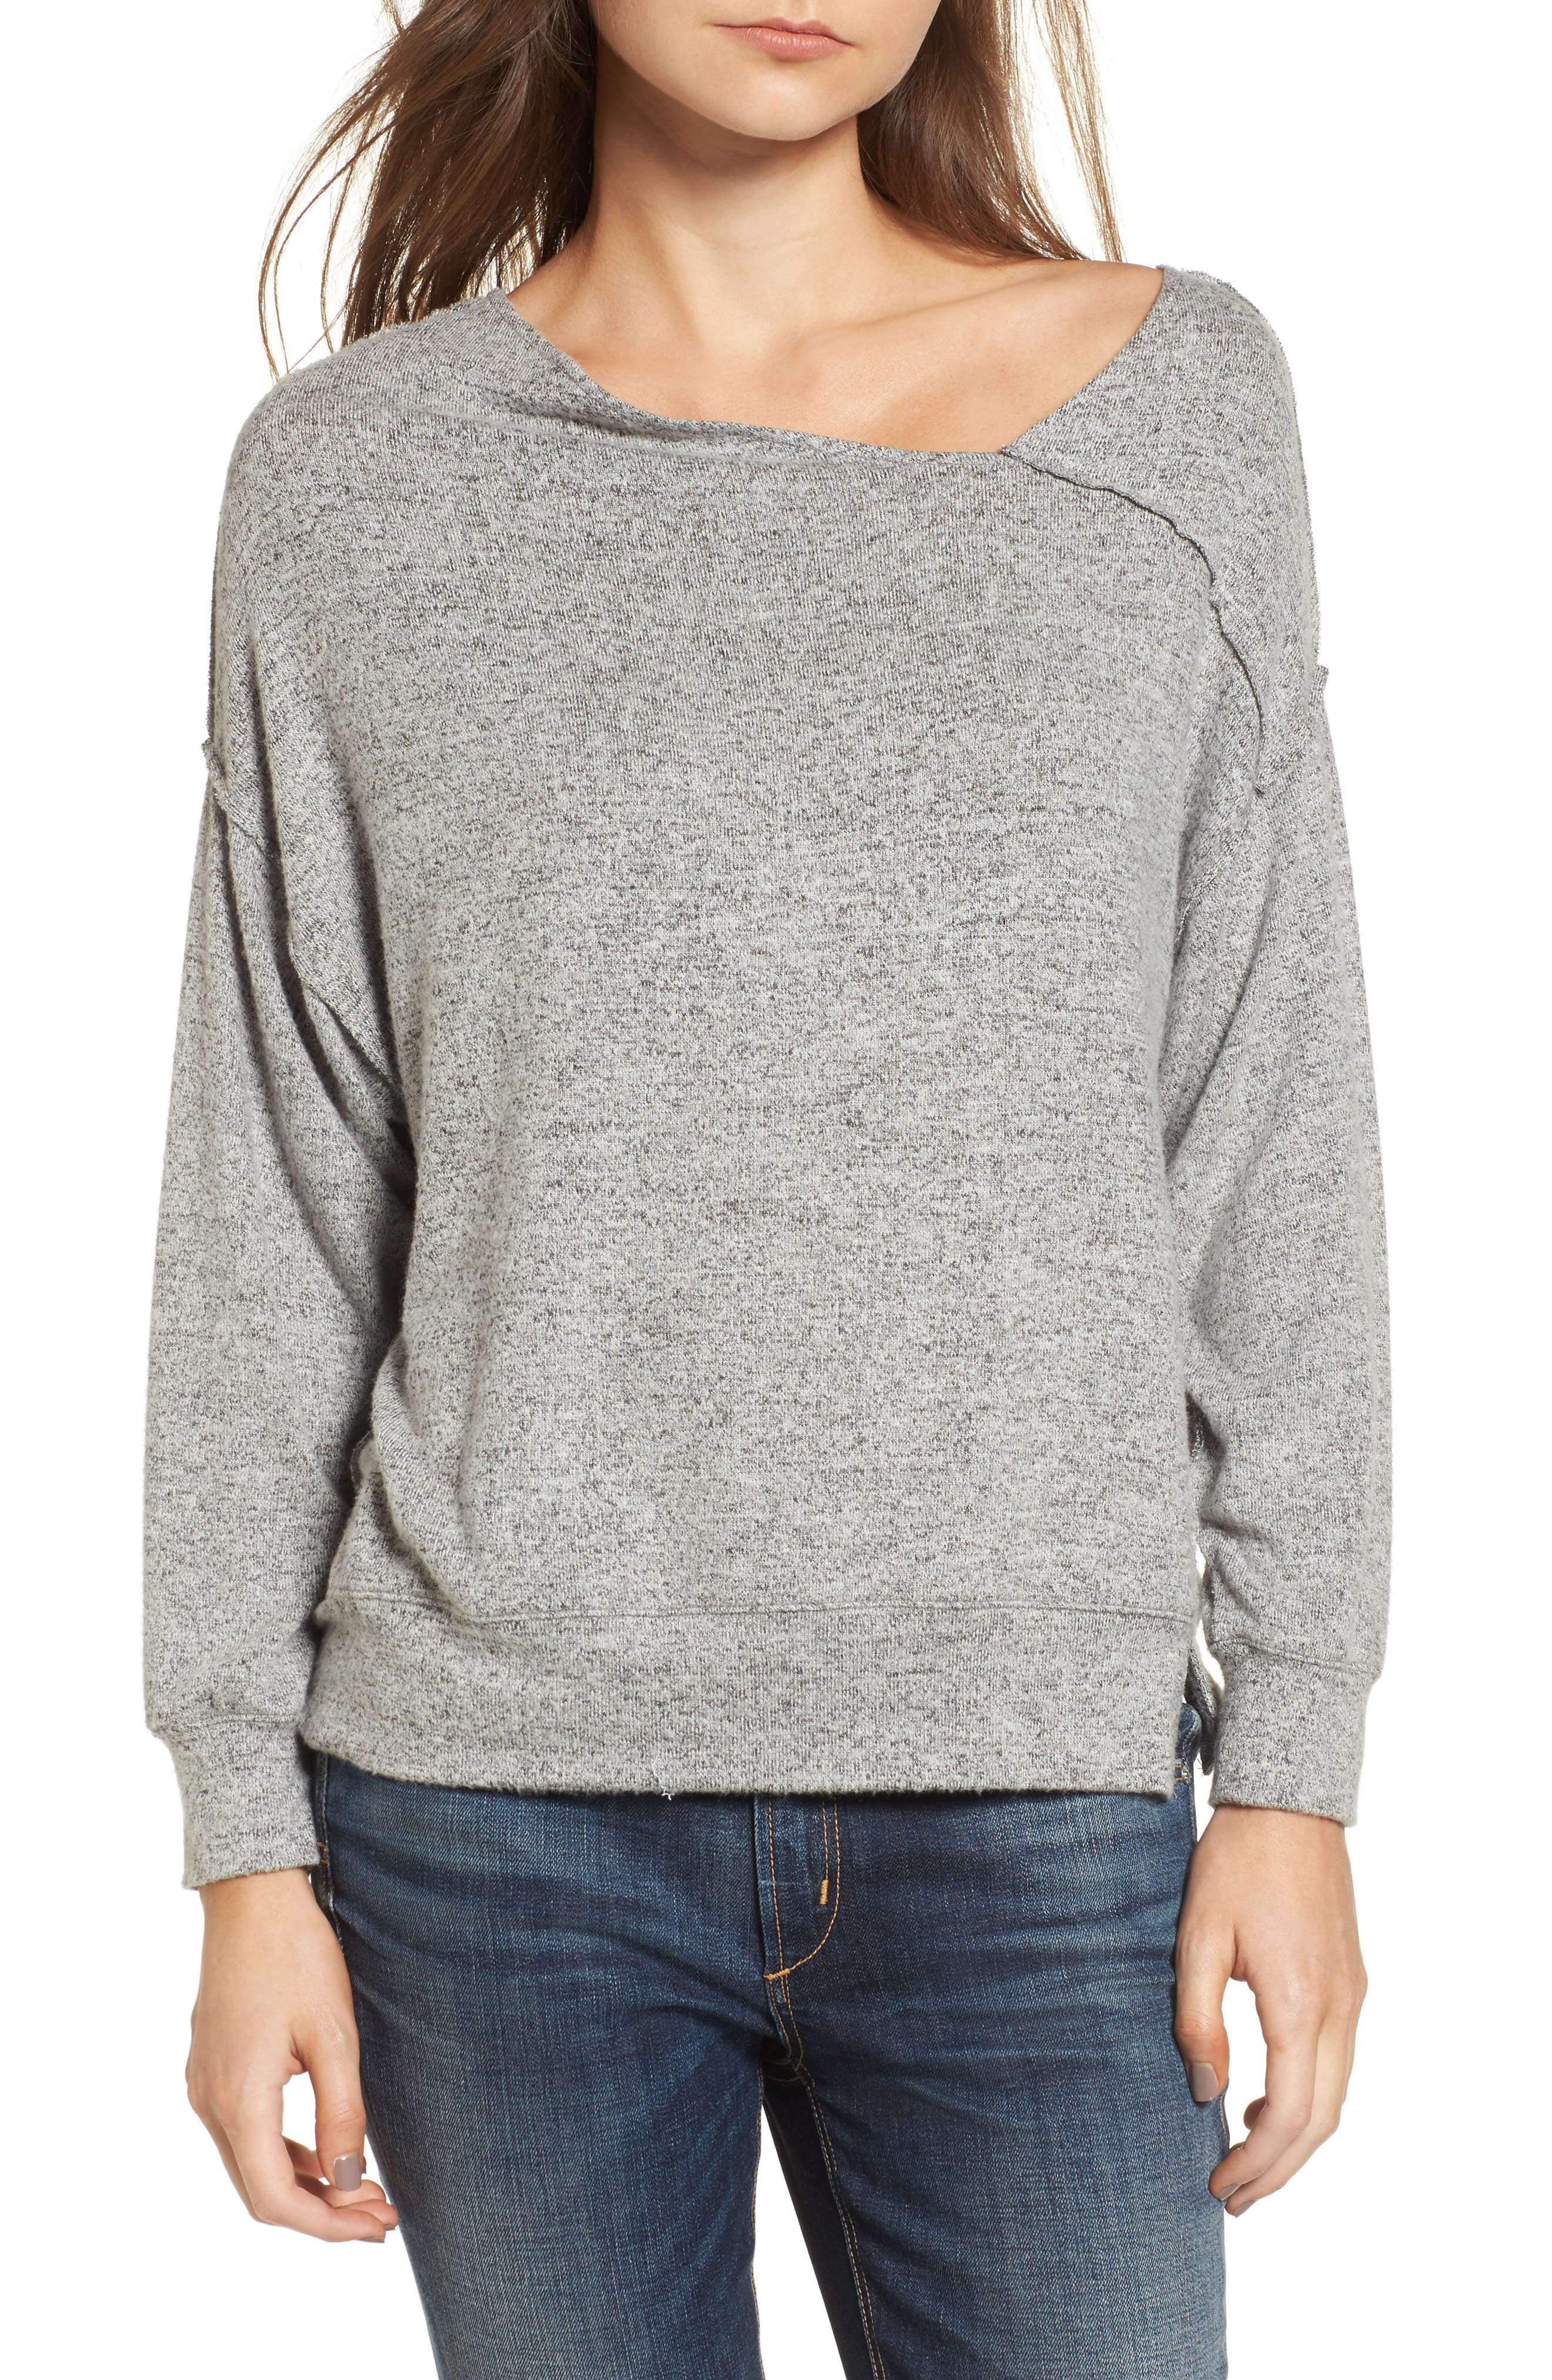 McGuire Fontana Pullover